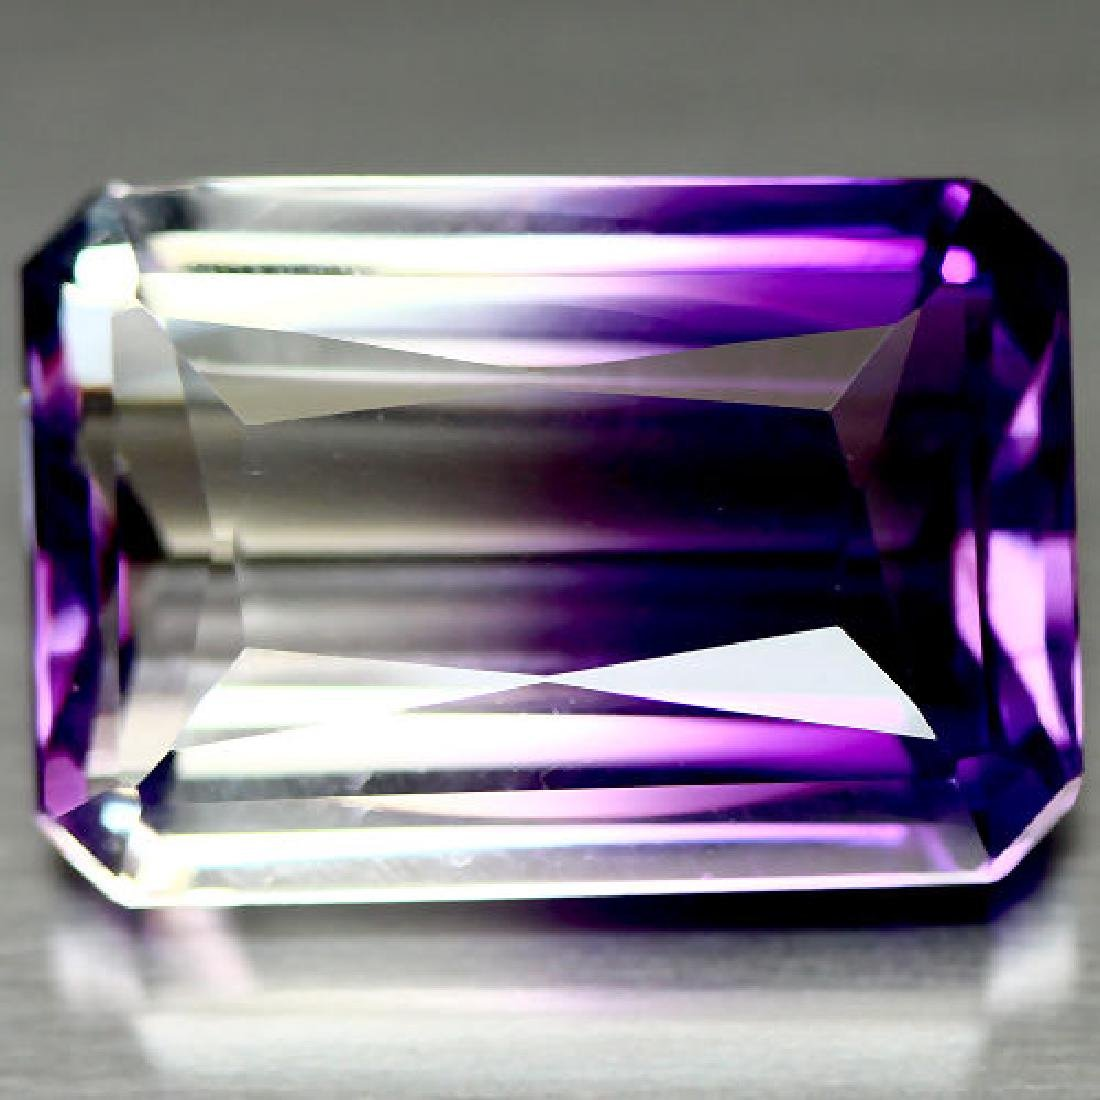 21.28 CT. AAA PURPLE & WHITE BOLIVIAN AMETRINE GEMSTONE